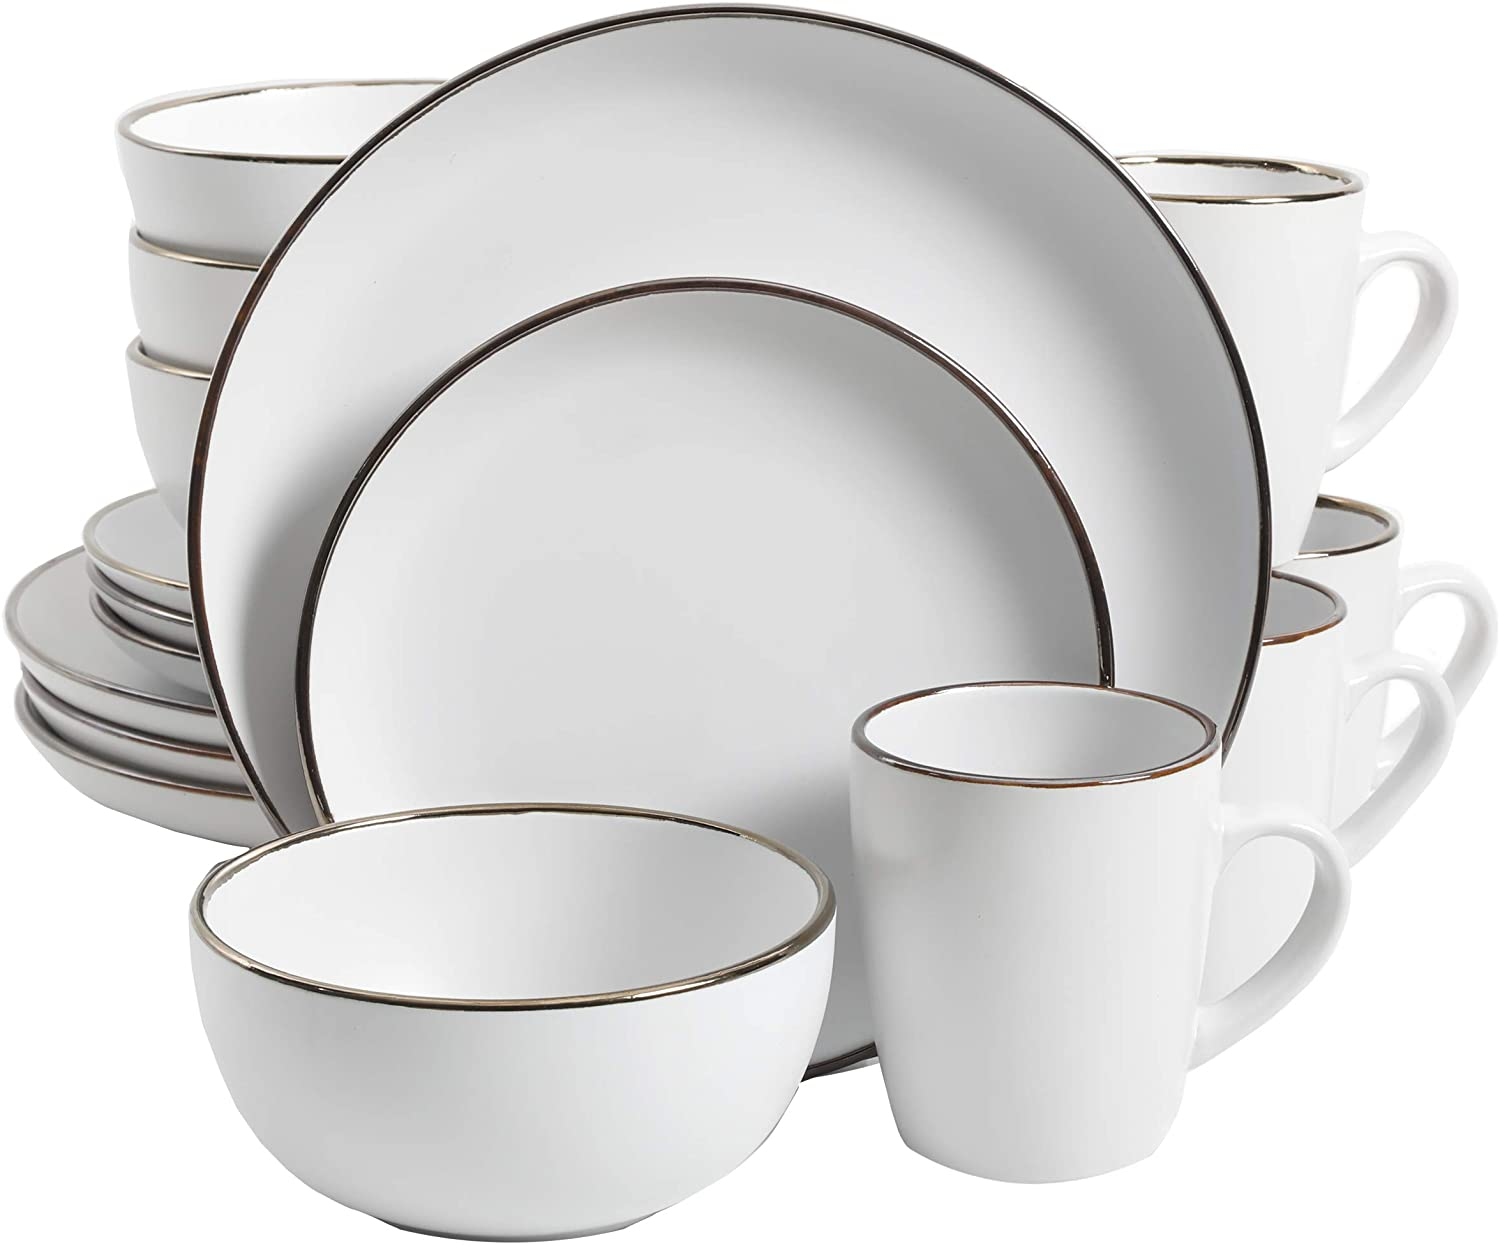 Gibson Home Rockaway Round Stoneware Dinnerware Set, Service for 4 (16pcs), Matte White/Gold Rim